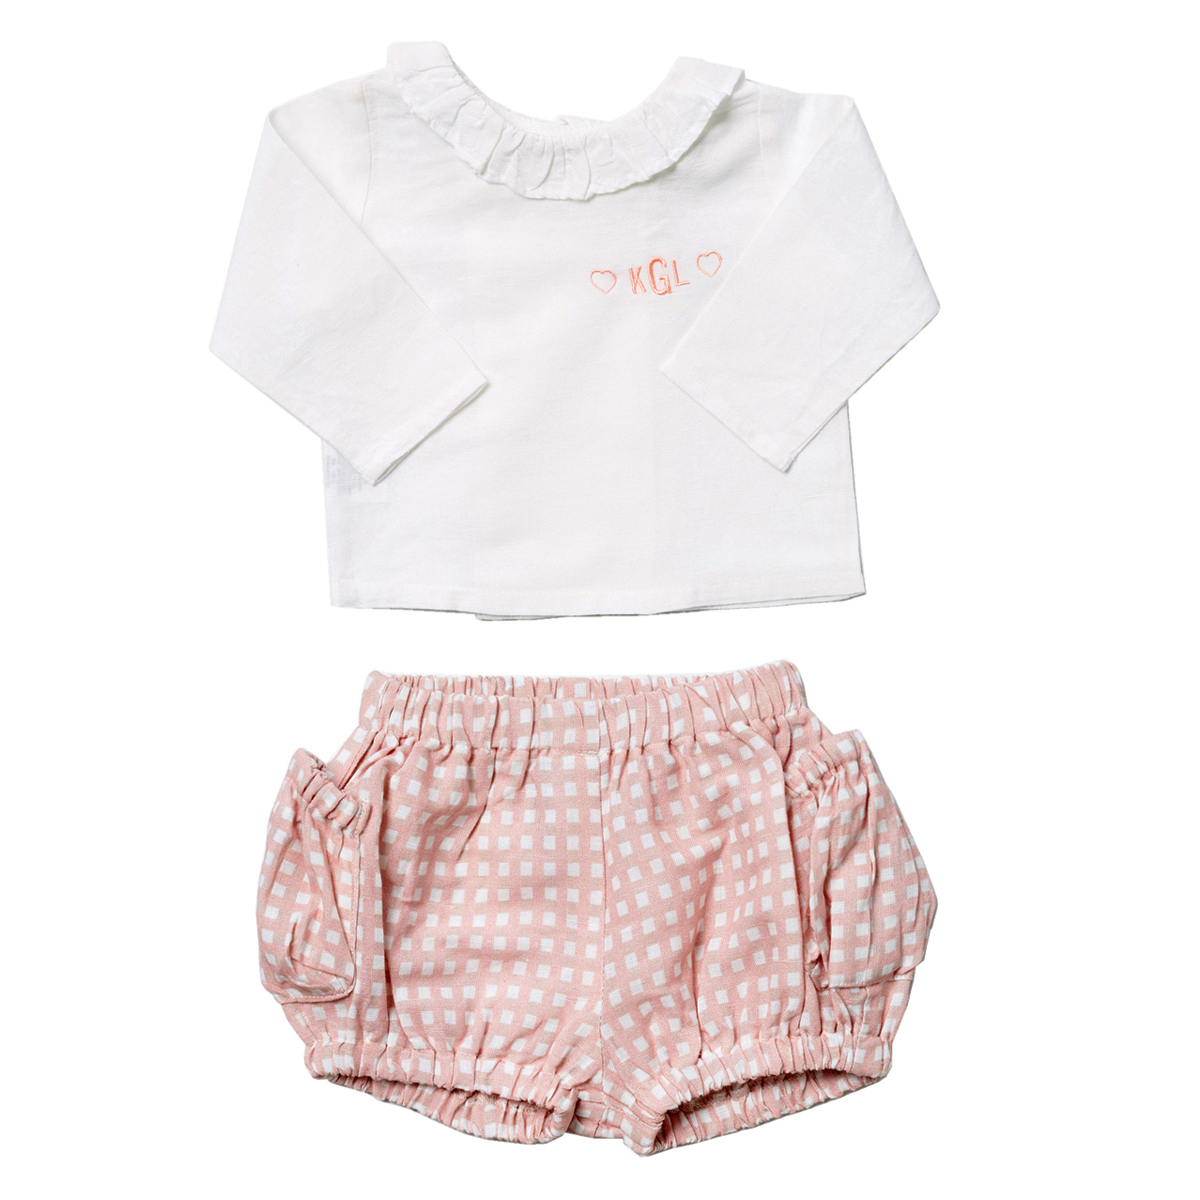 Louelle Valentine Outfit Set – Pink Gingham